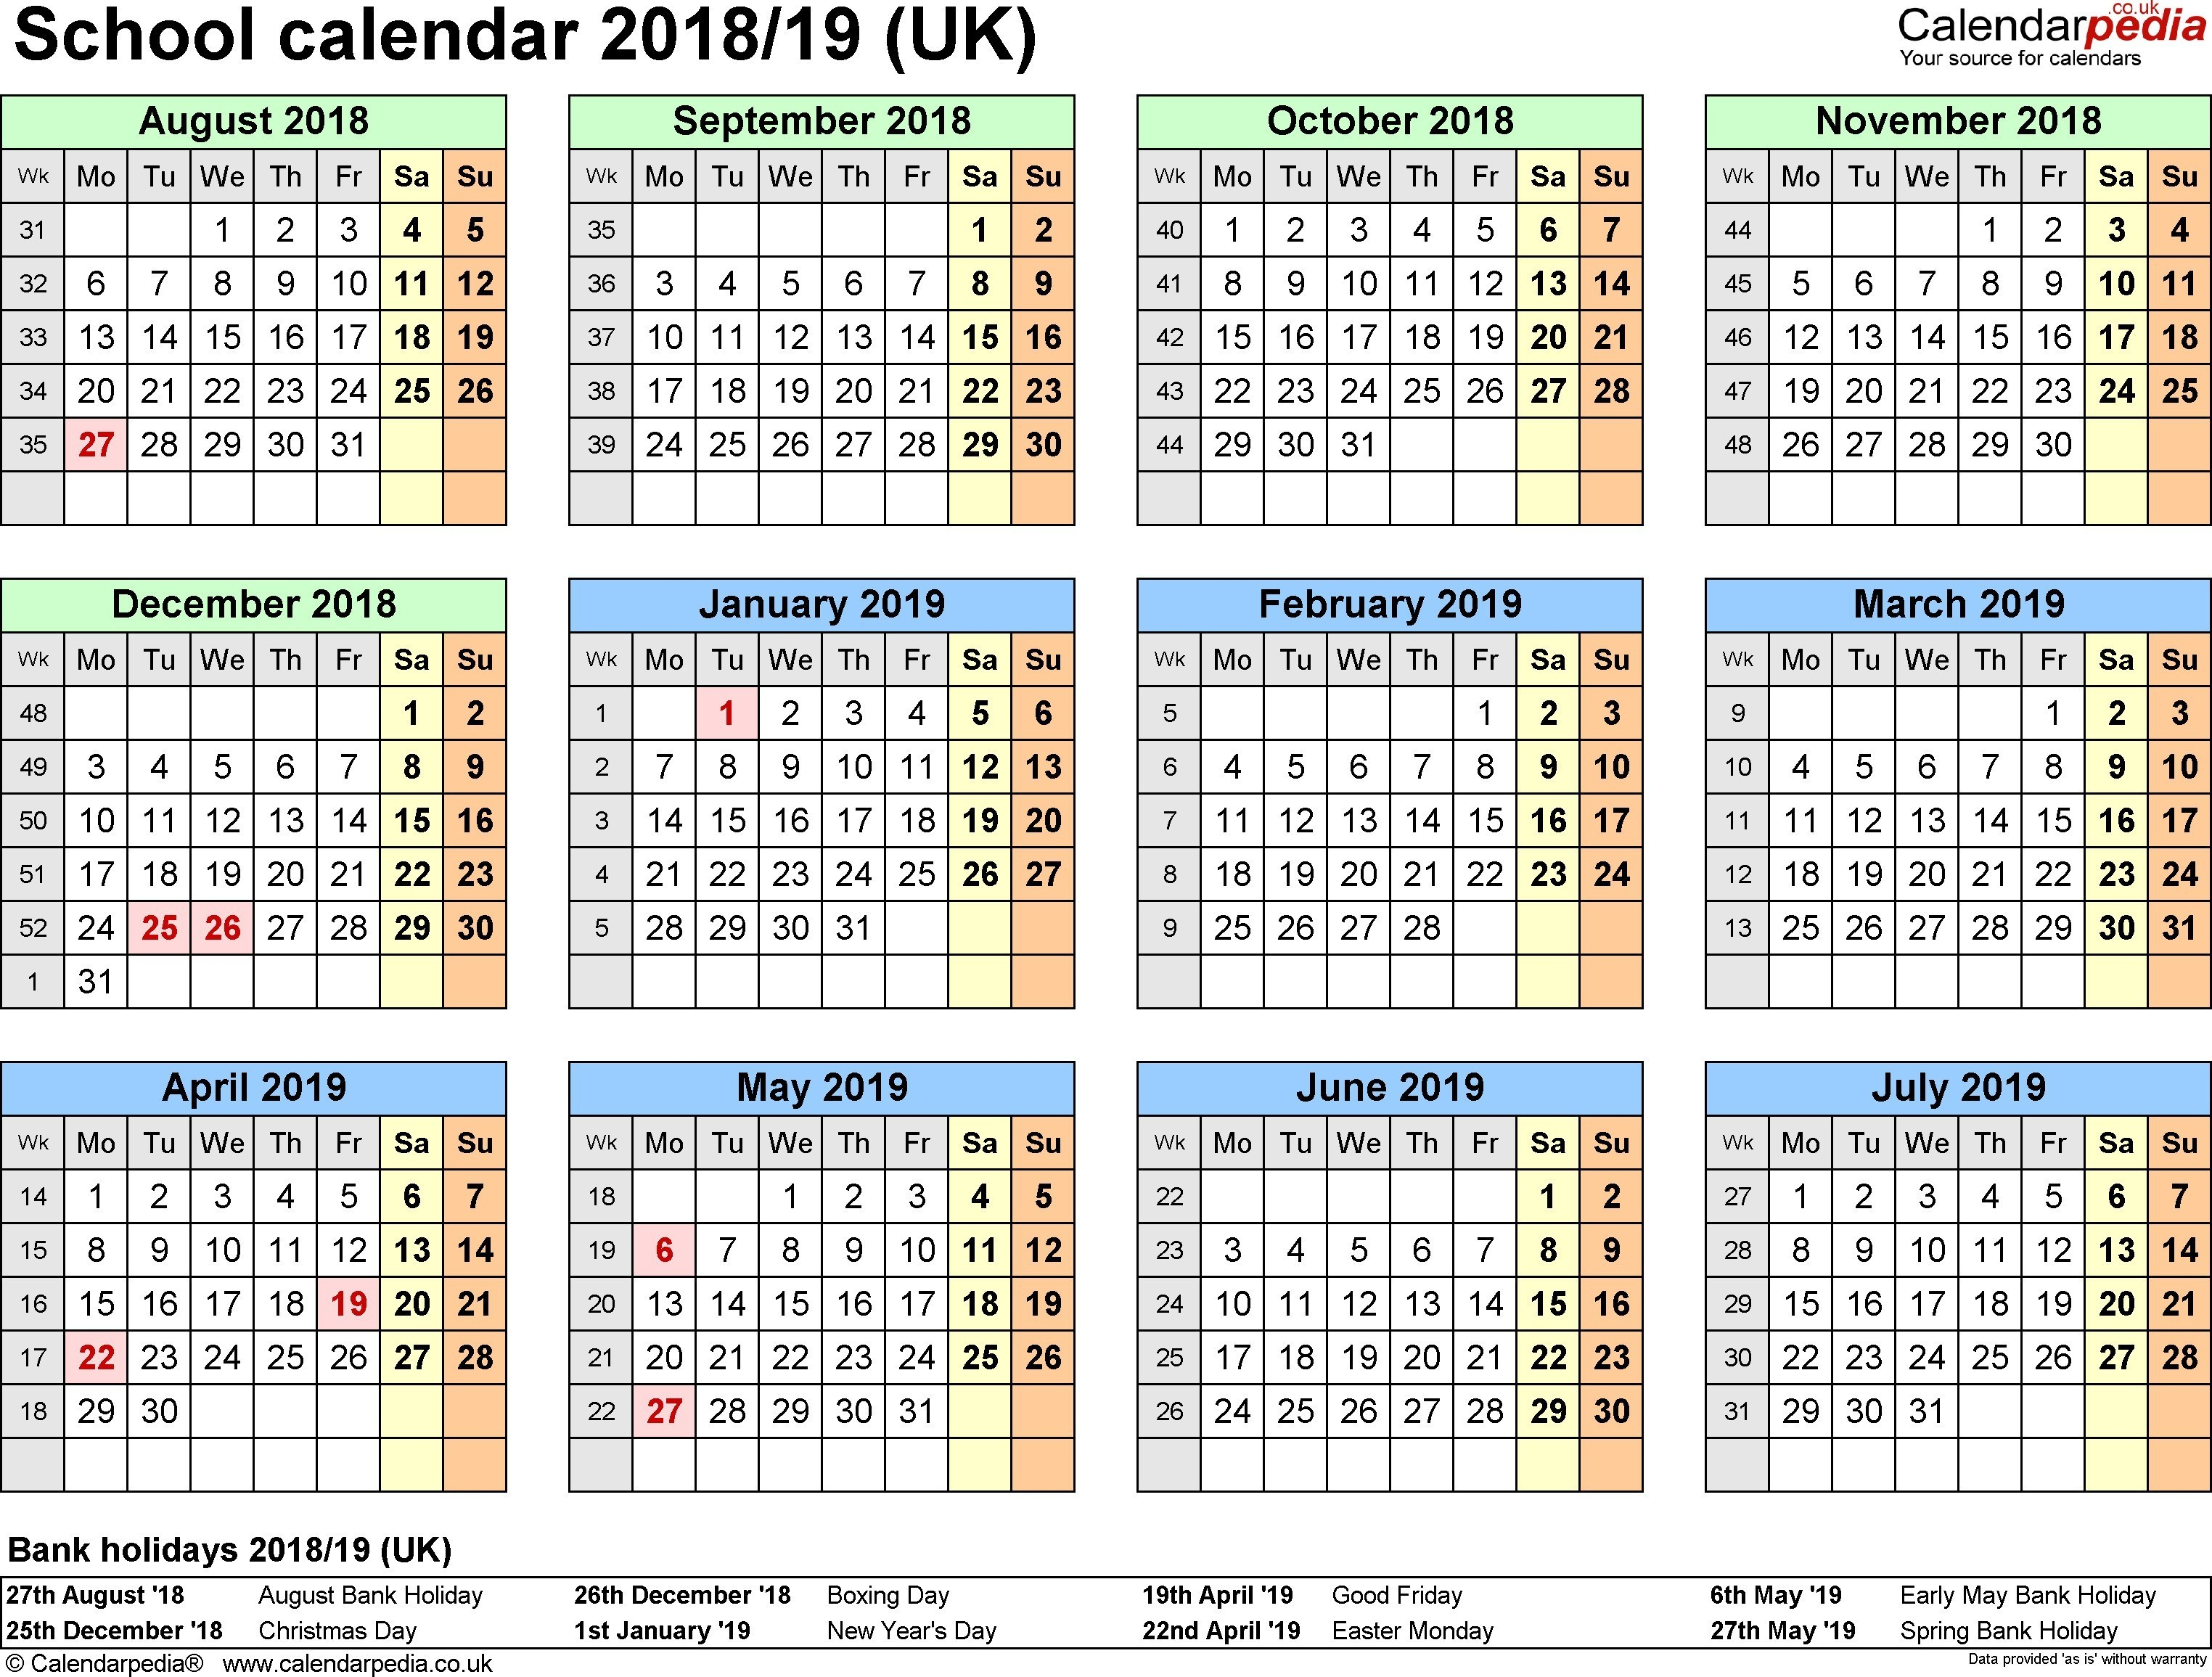 March 2018 Calendar Kalnirnay Más Recientemente Liberado August 2106 Calendar Lara Expolicenciaslatam Of March 2018 Calendar Kalnirnay Más Recientes Kalender Vorlage Powerpoint 2017 Great Keynote Calendar Template